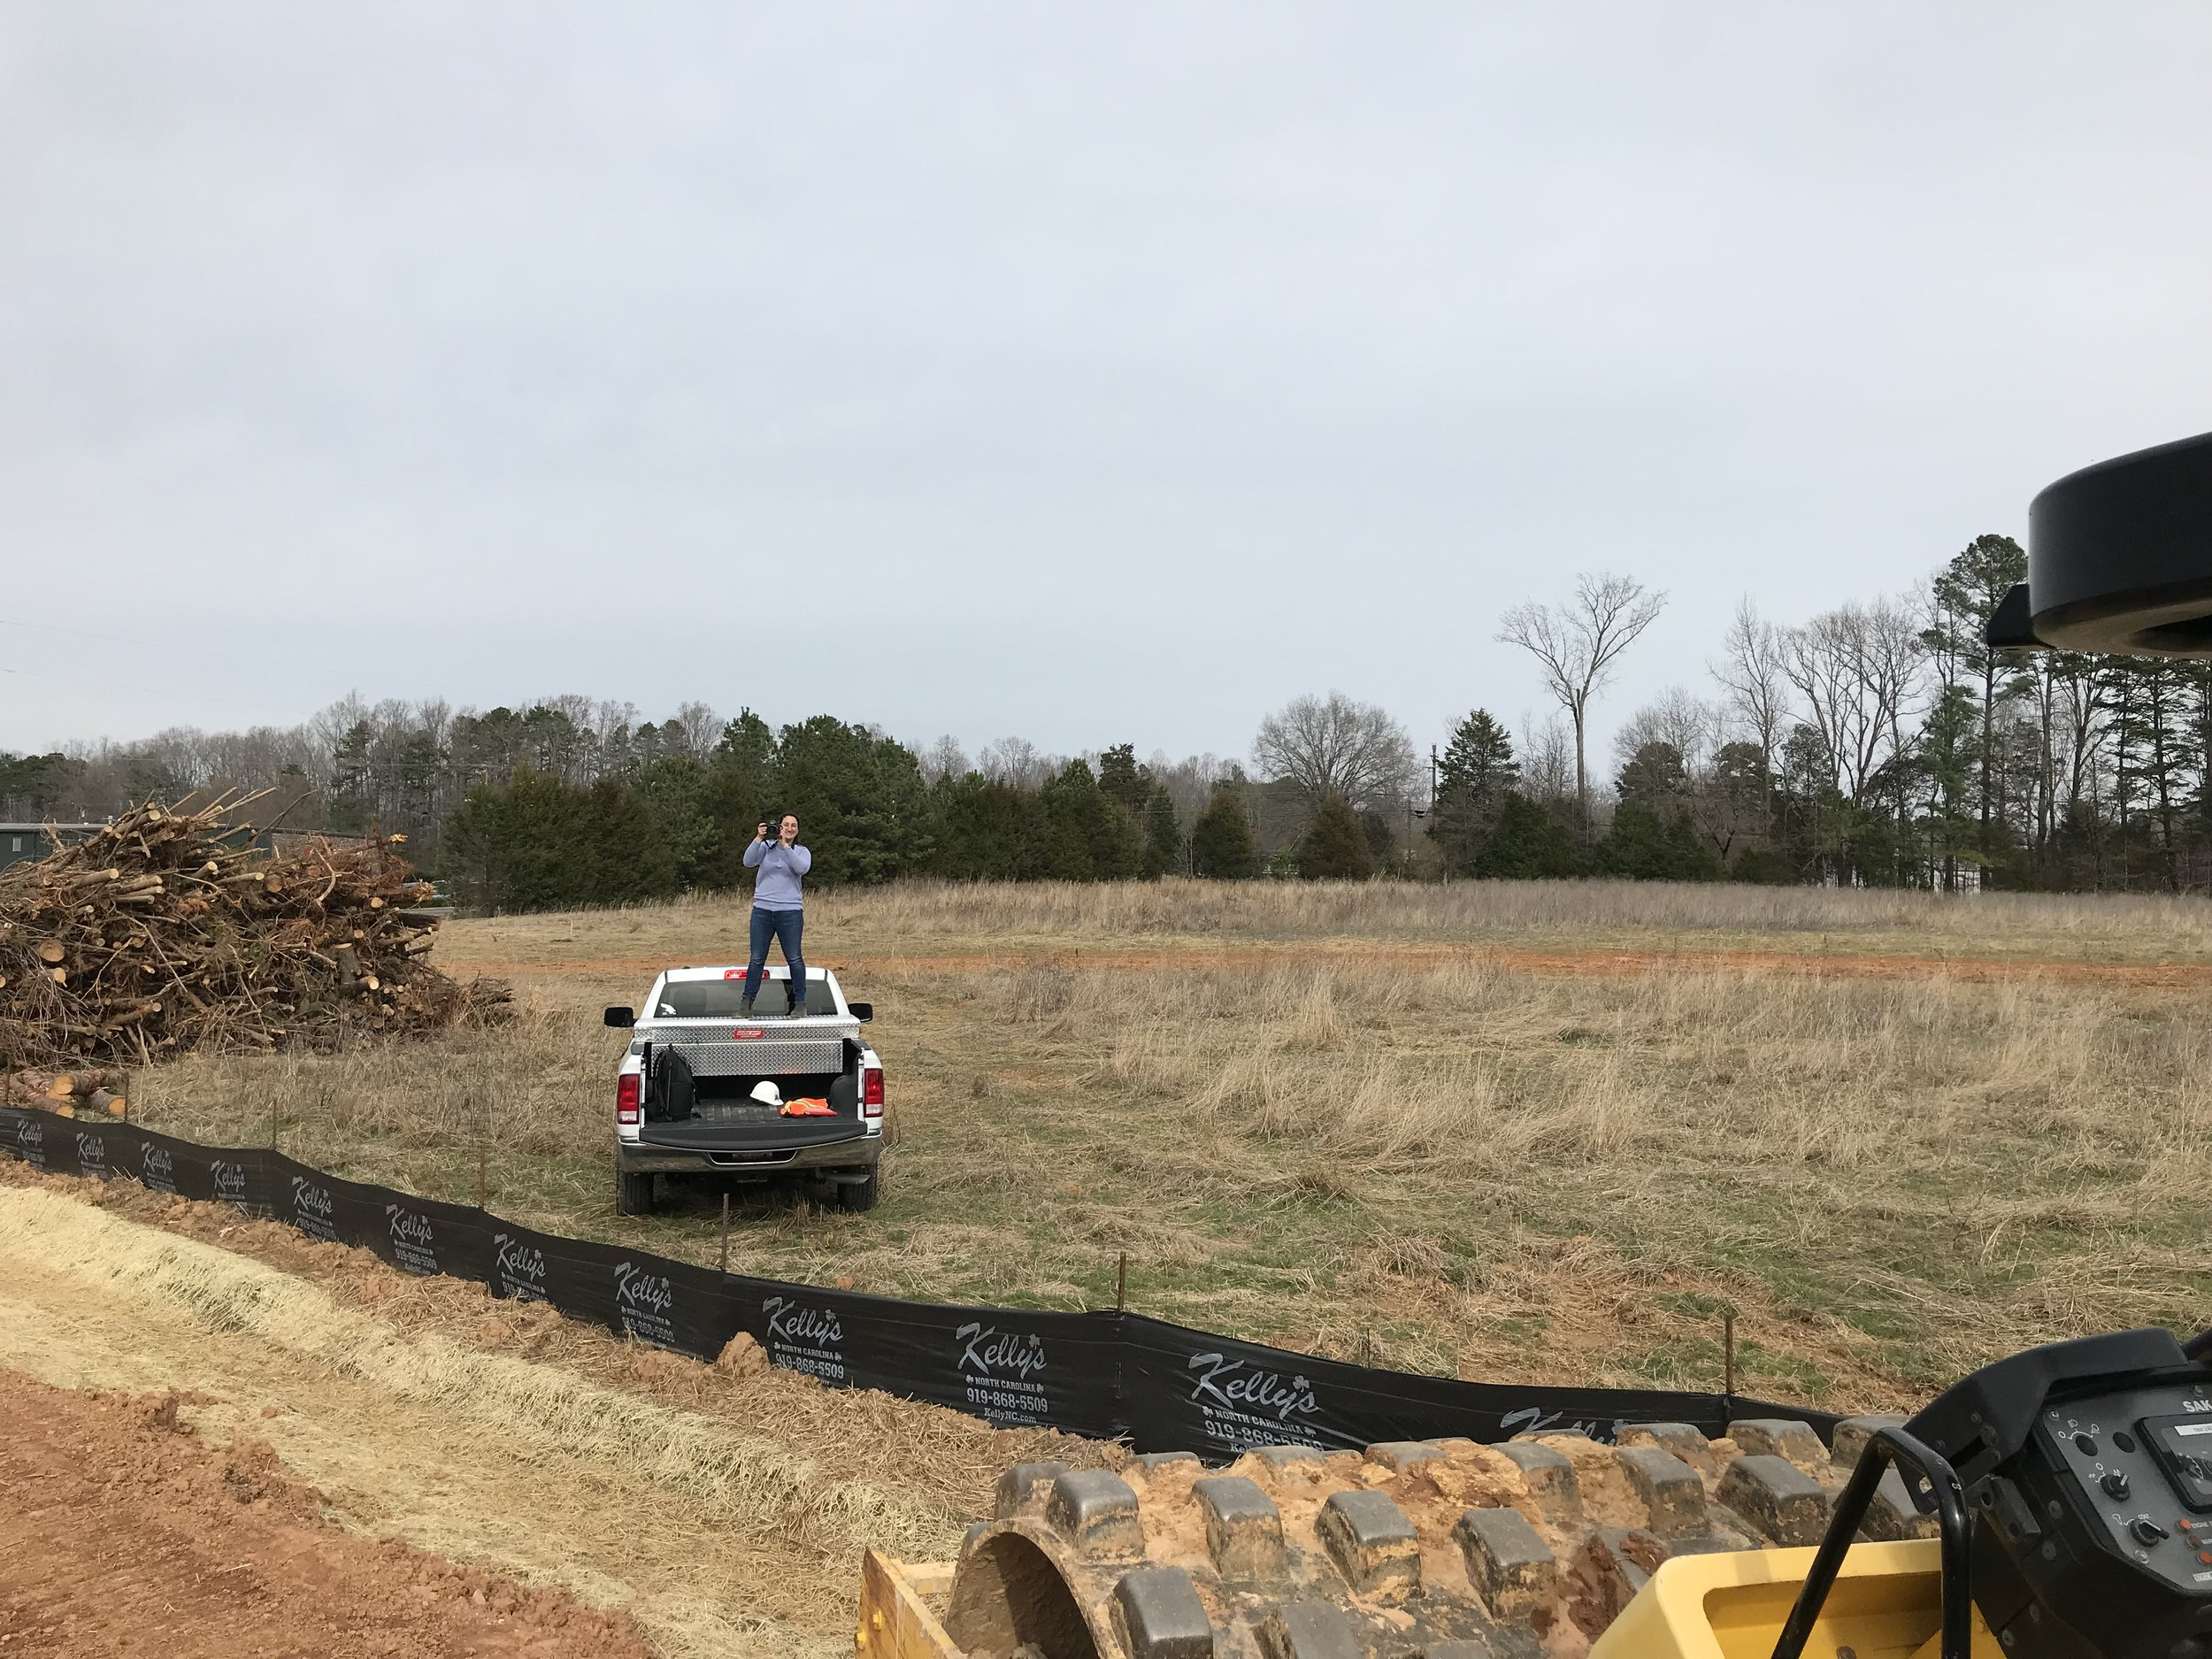 Photographing staff and construction progress at Wetrock Farm, Durham NC.